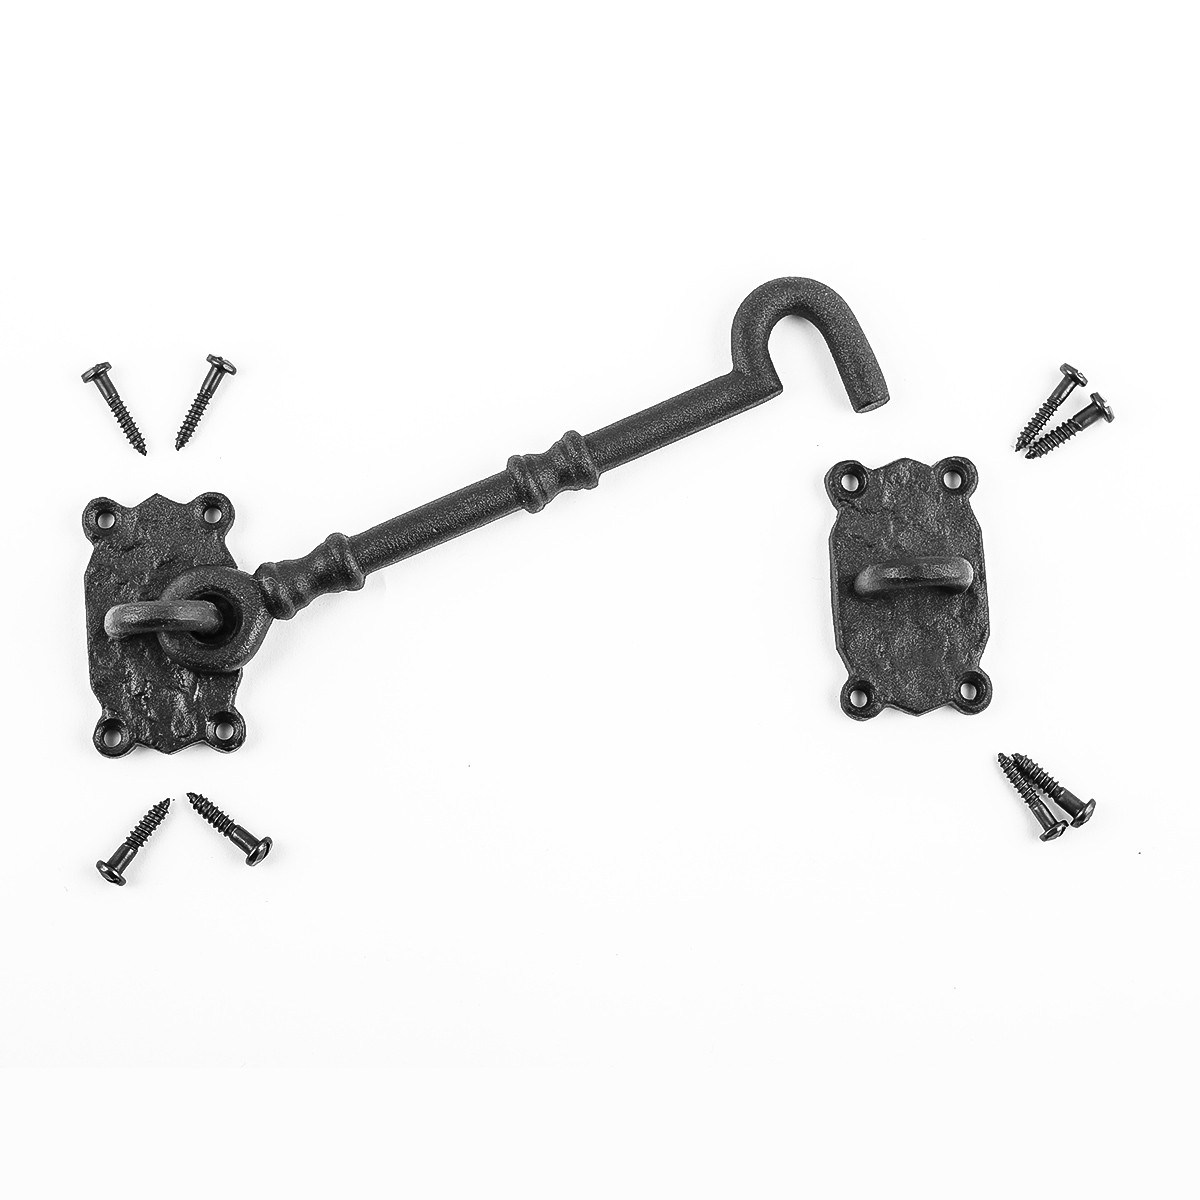 Cabin Hook And Eye Latch Iron Eye and Hook Latch Black 7.25 Inch Cabin Hook Latch Wrought Iron Cabin Hook Cabin Hook And Eye Latch